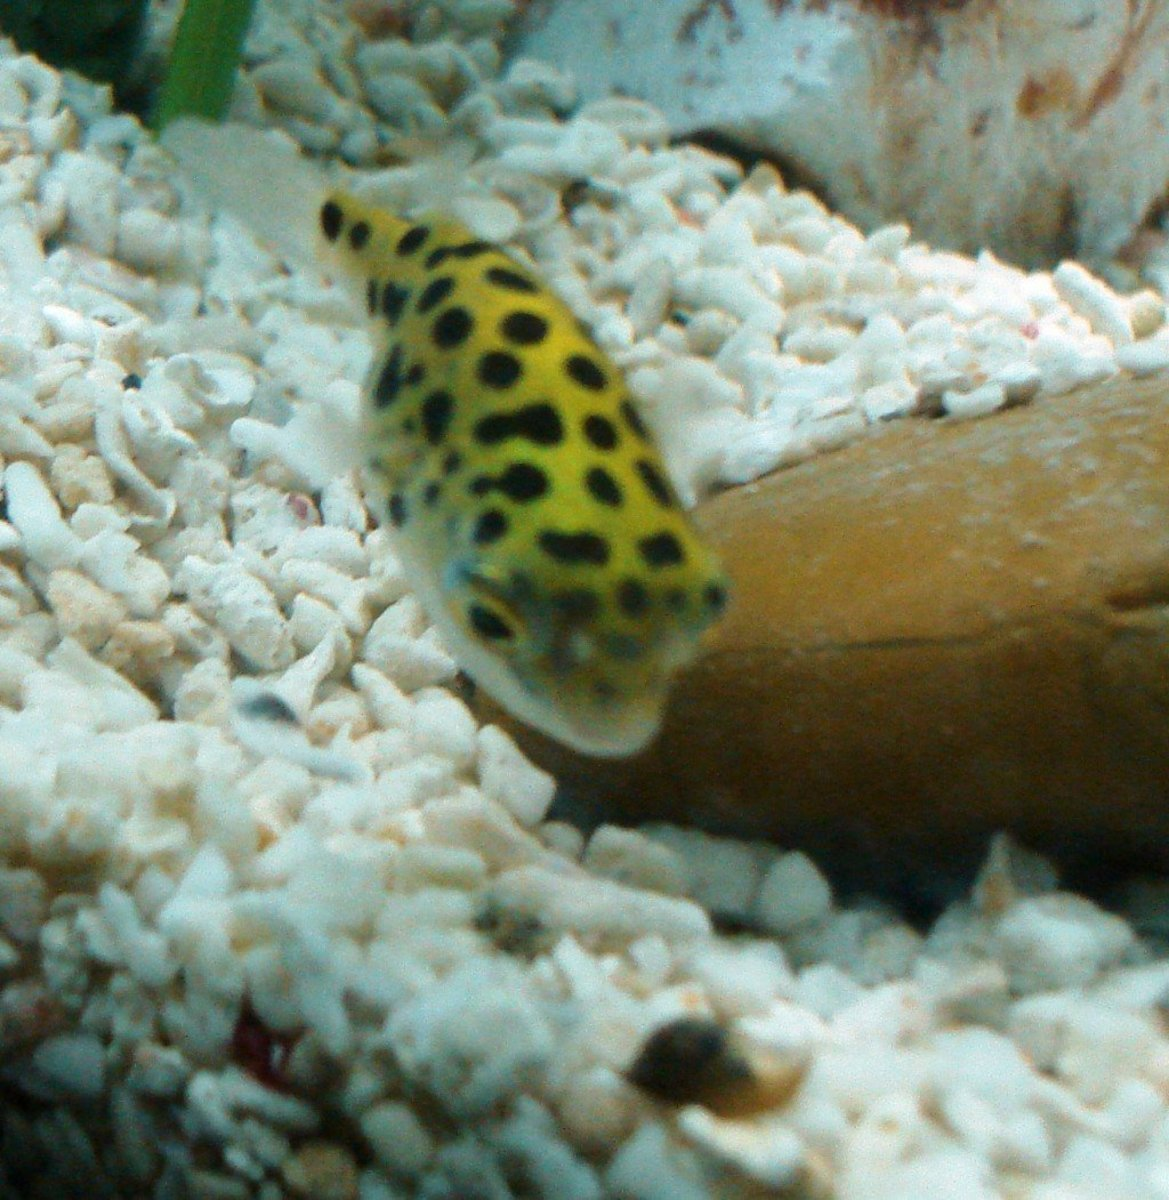 Green spotted puffer fish care feeding and tank setup for Puffer fish images